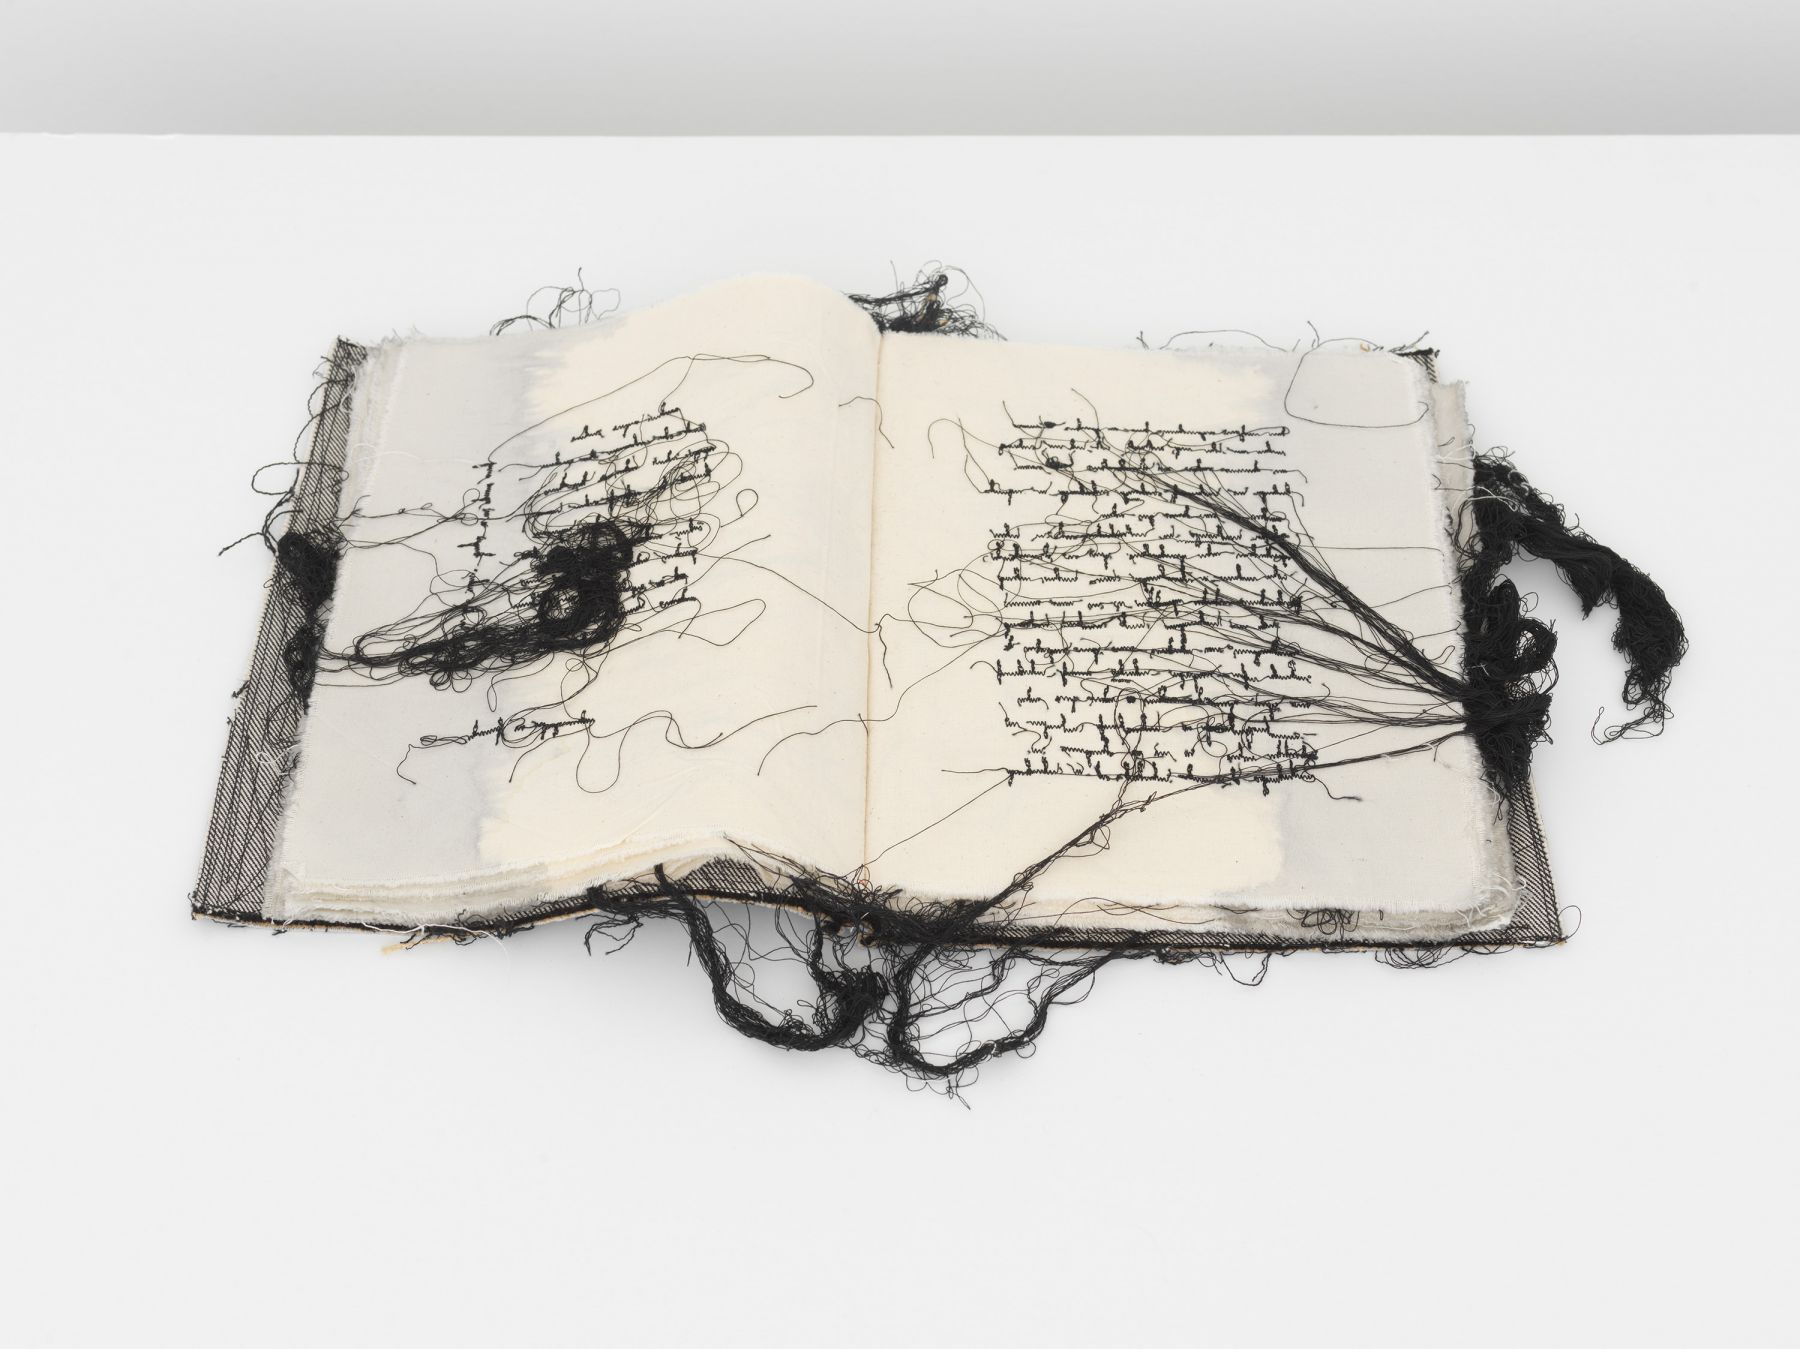 an embroidered fabric book by maria lai for sale at a nyc gallery